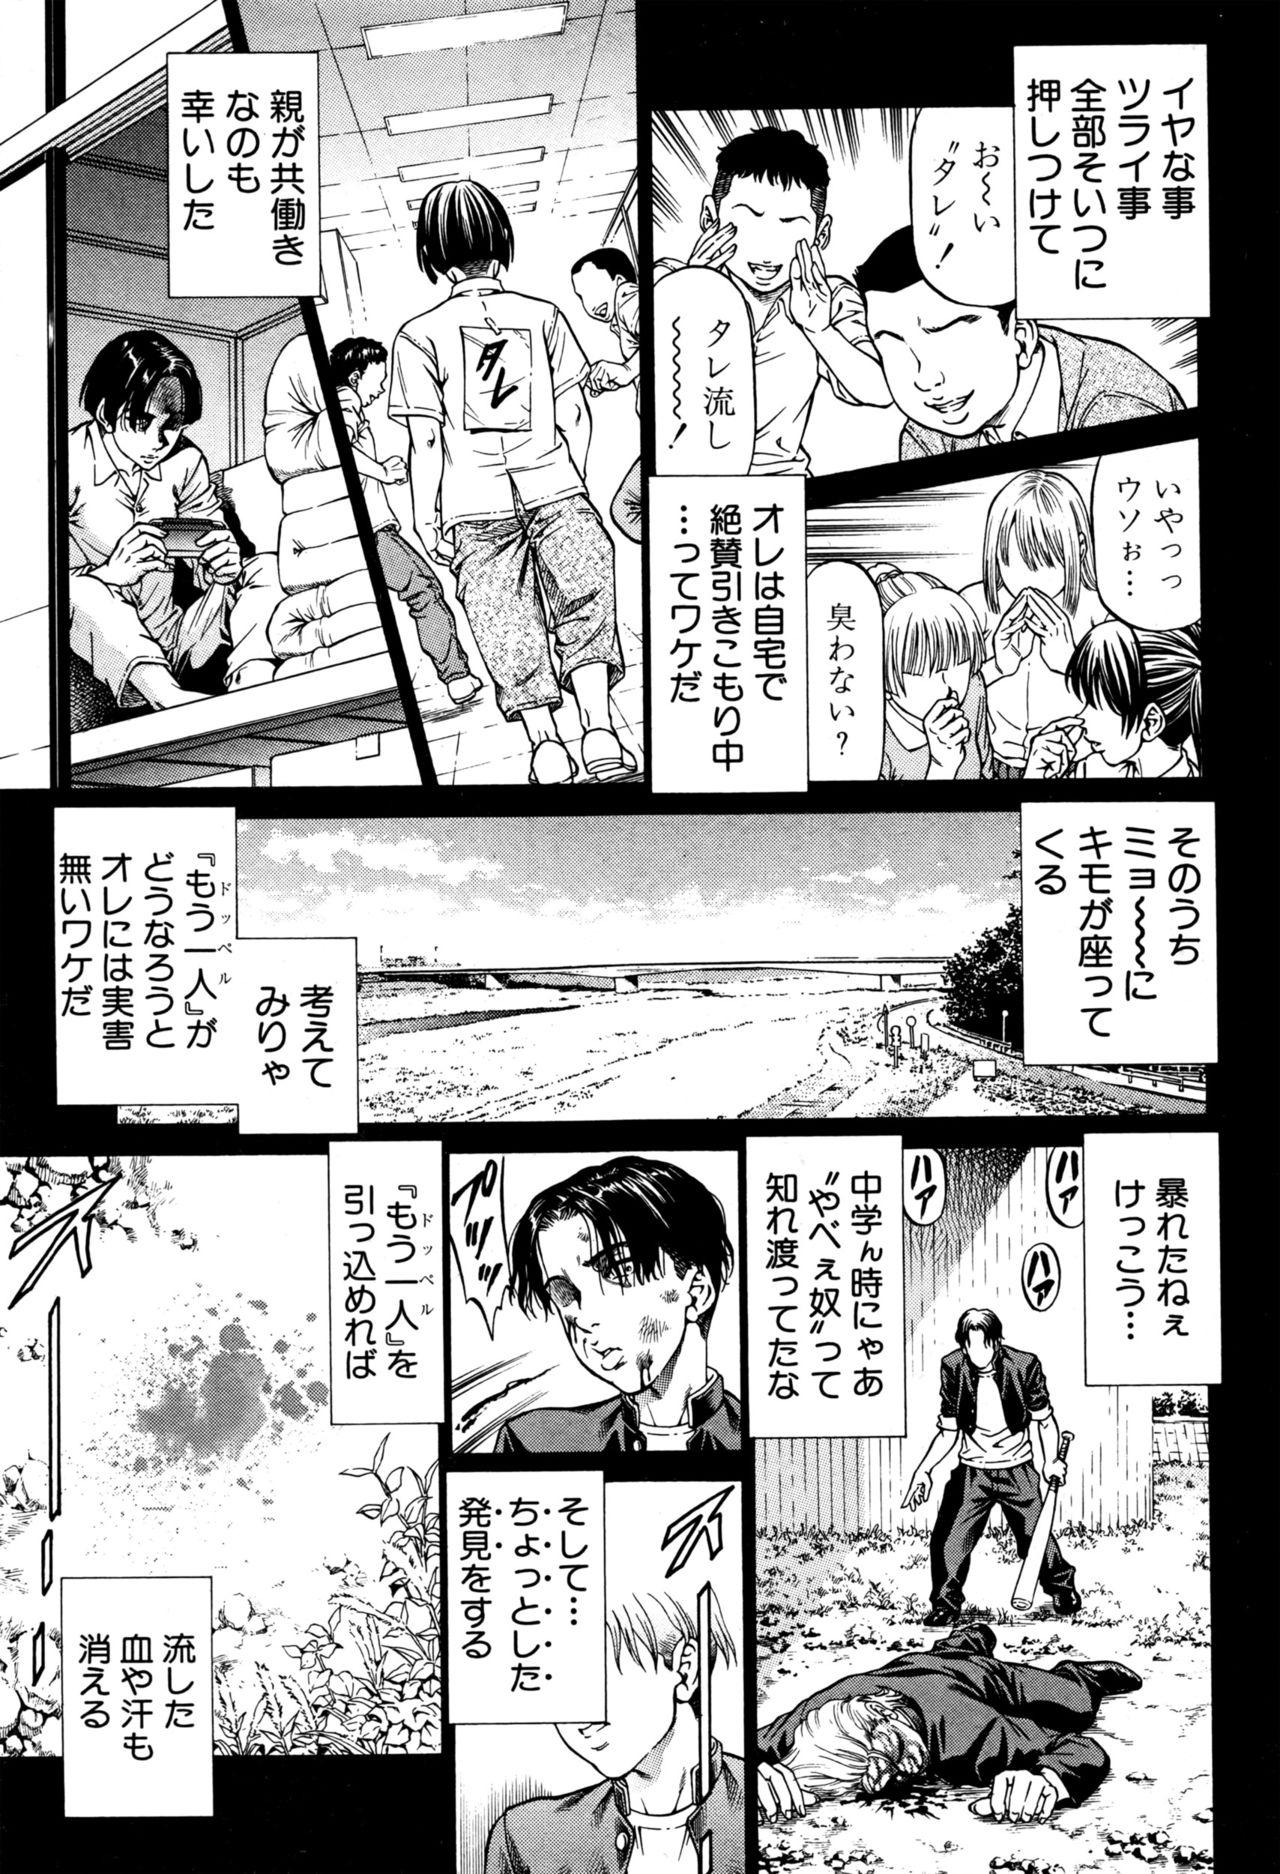 BUSTER COMIC 2016-09 173